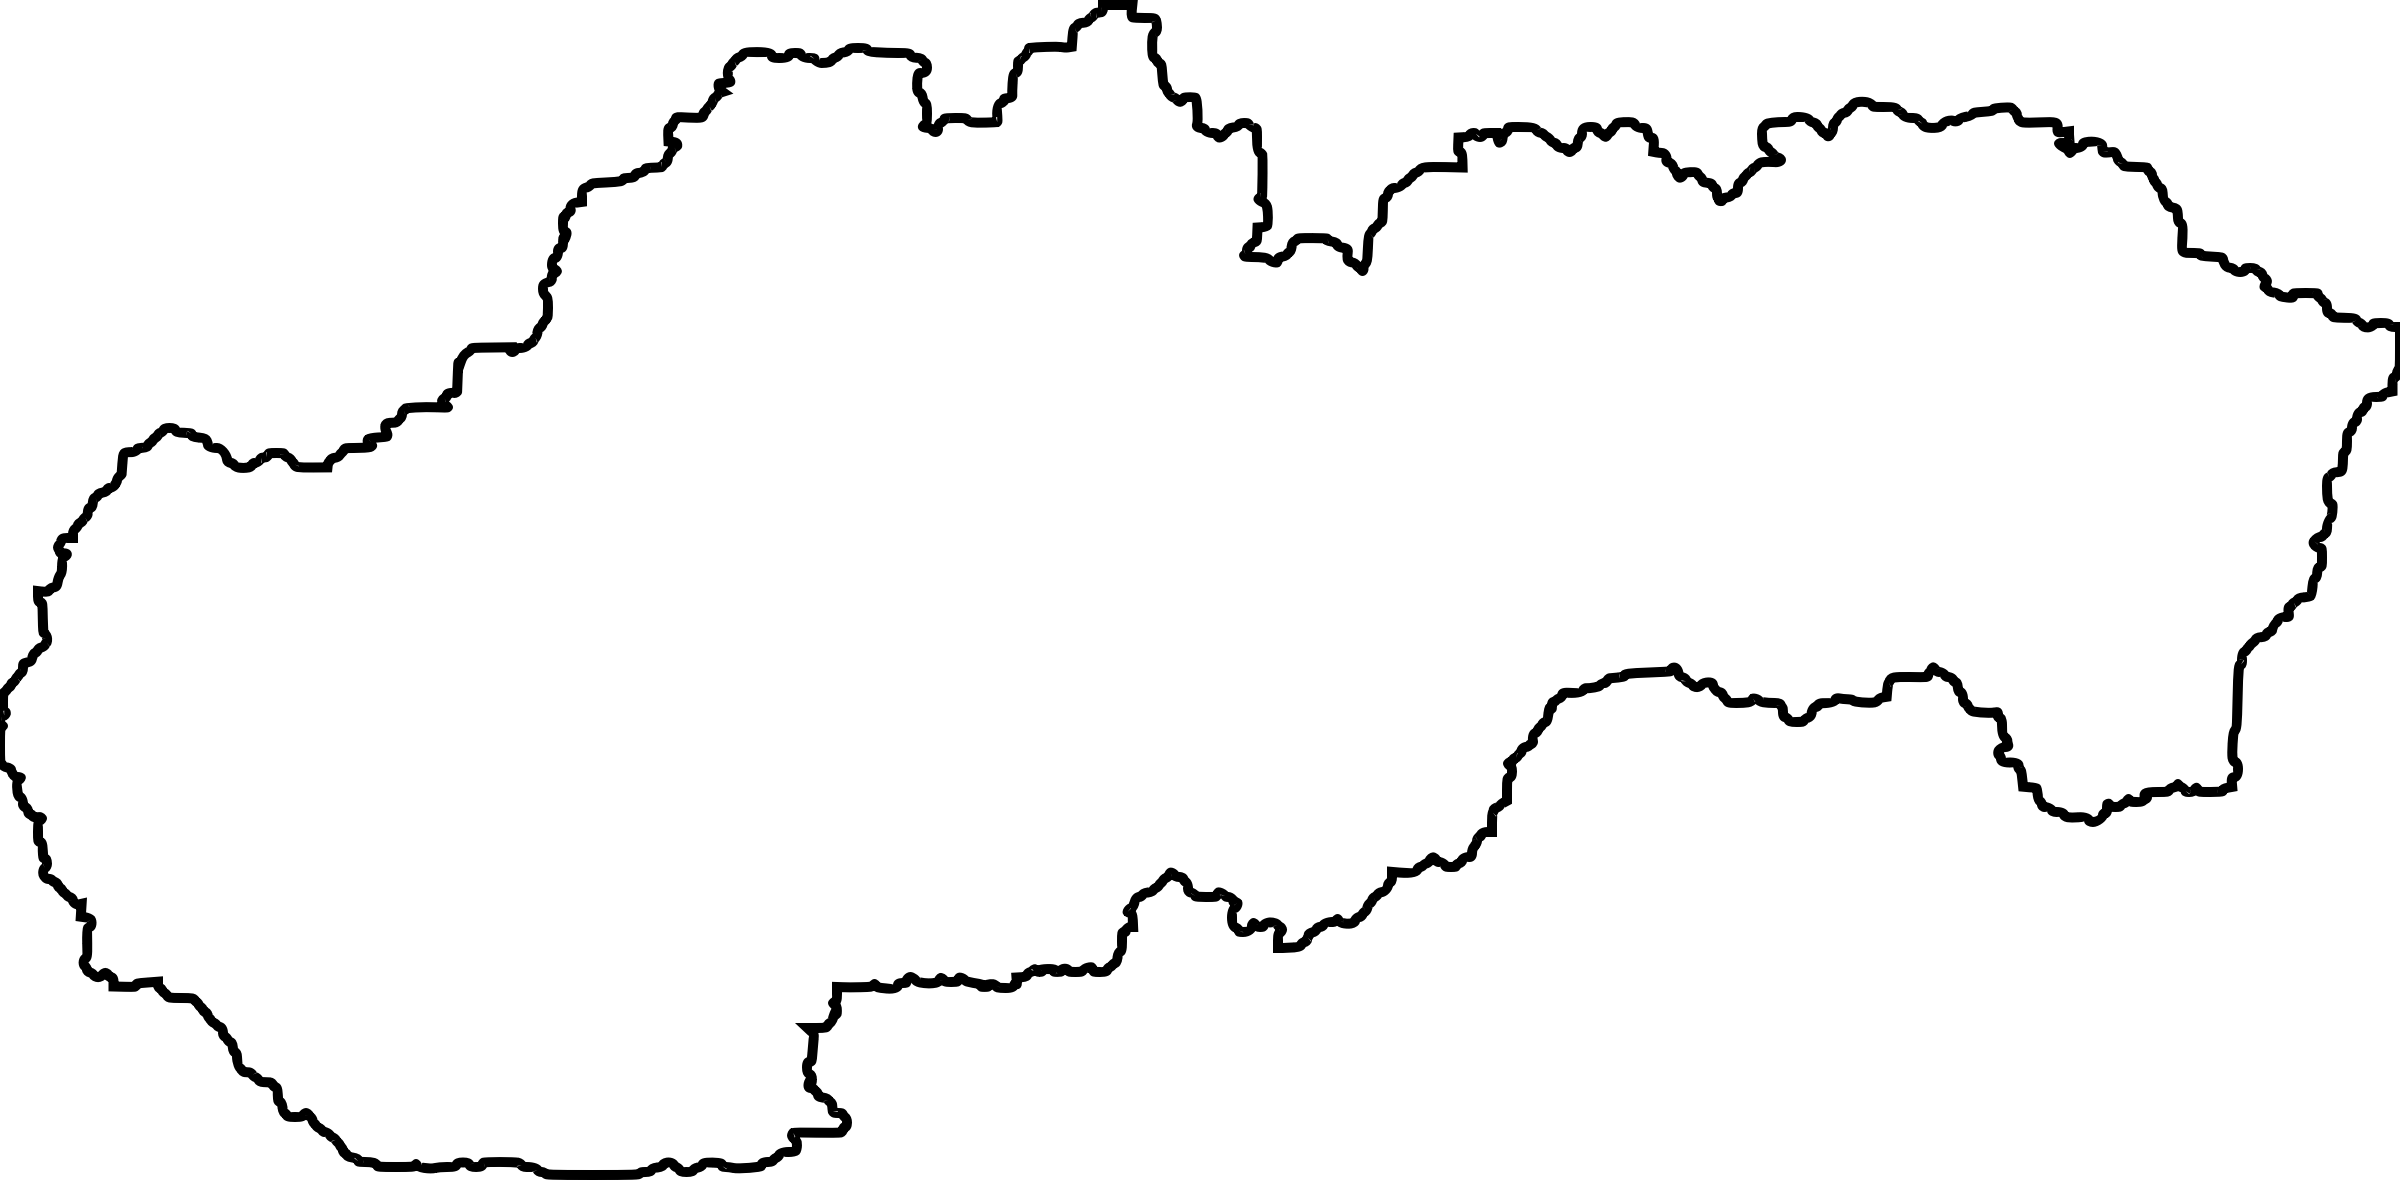 Outline of Slovakia with white fill by AdamStanislav